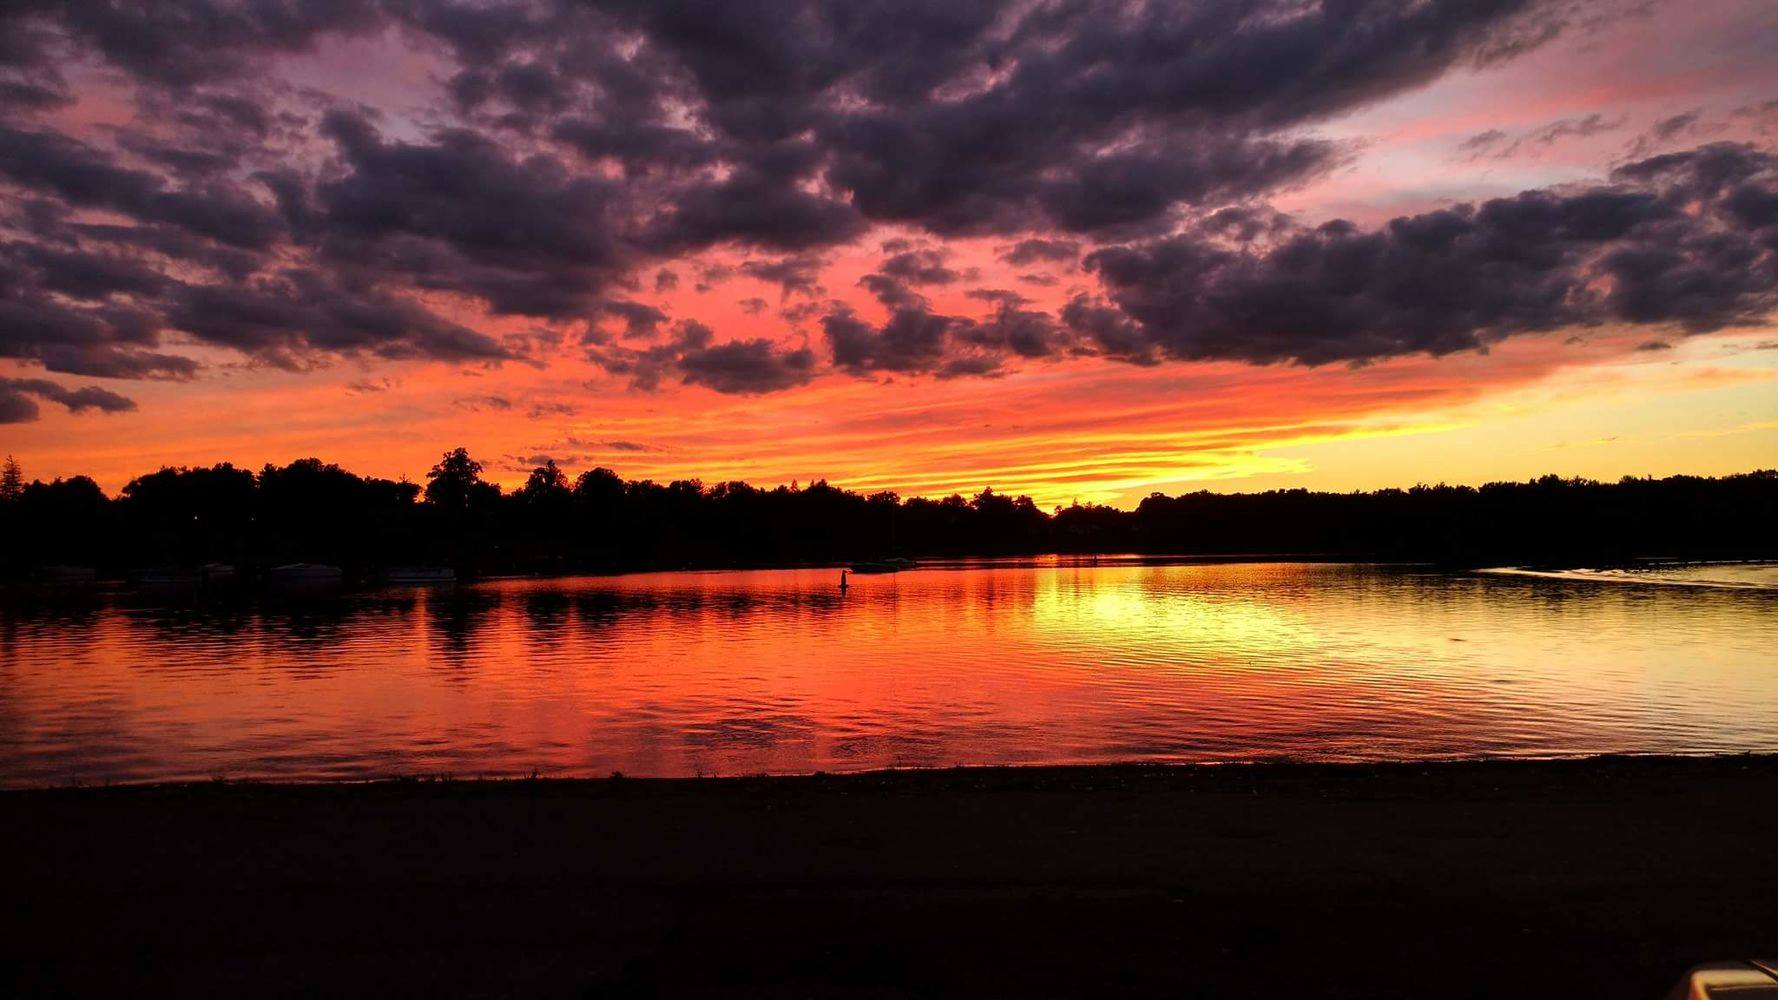 Sunset @Wethersfield Cove